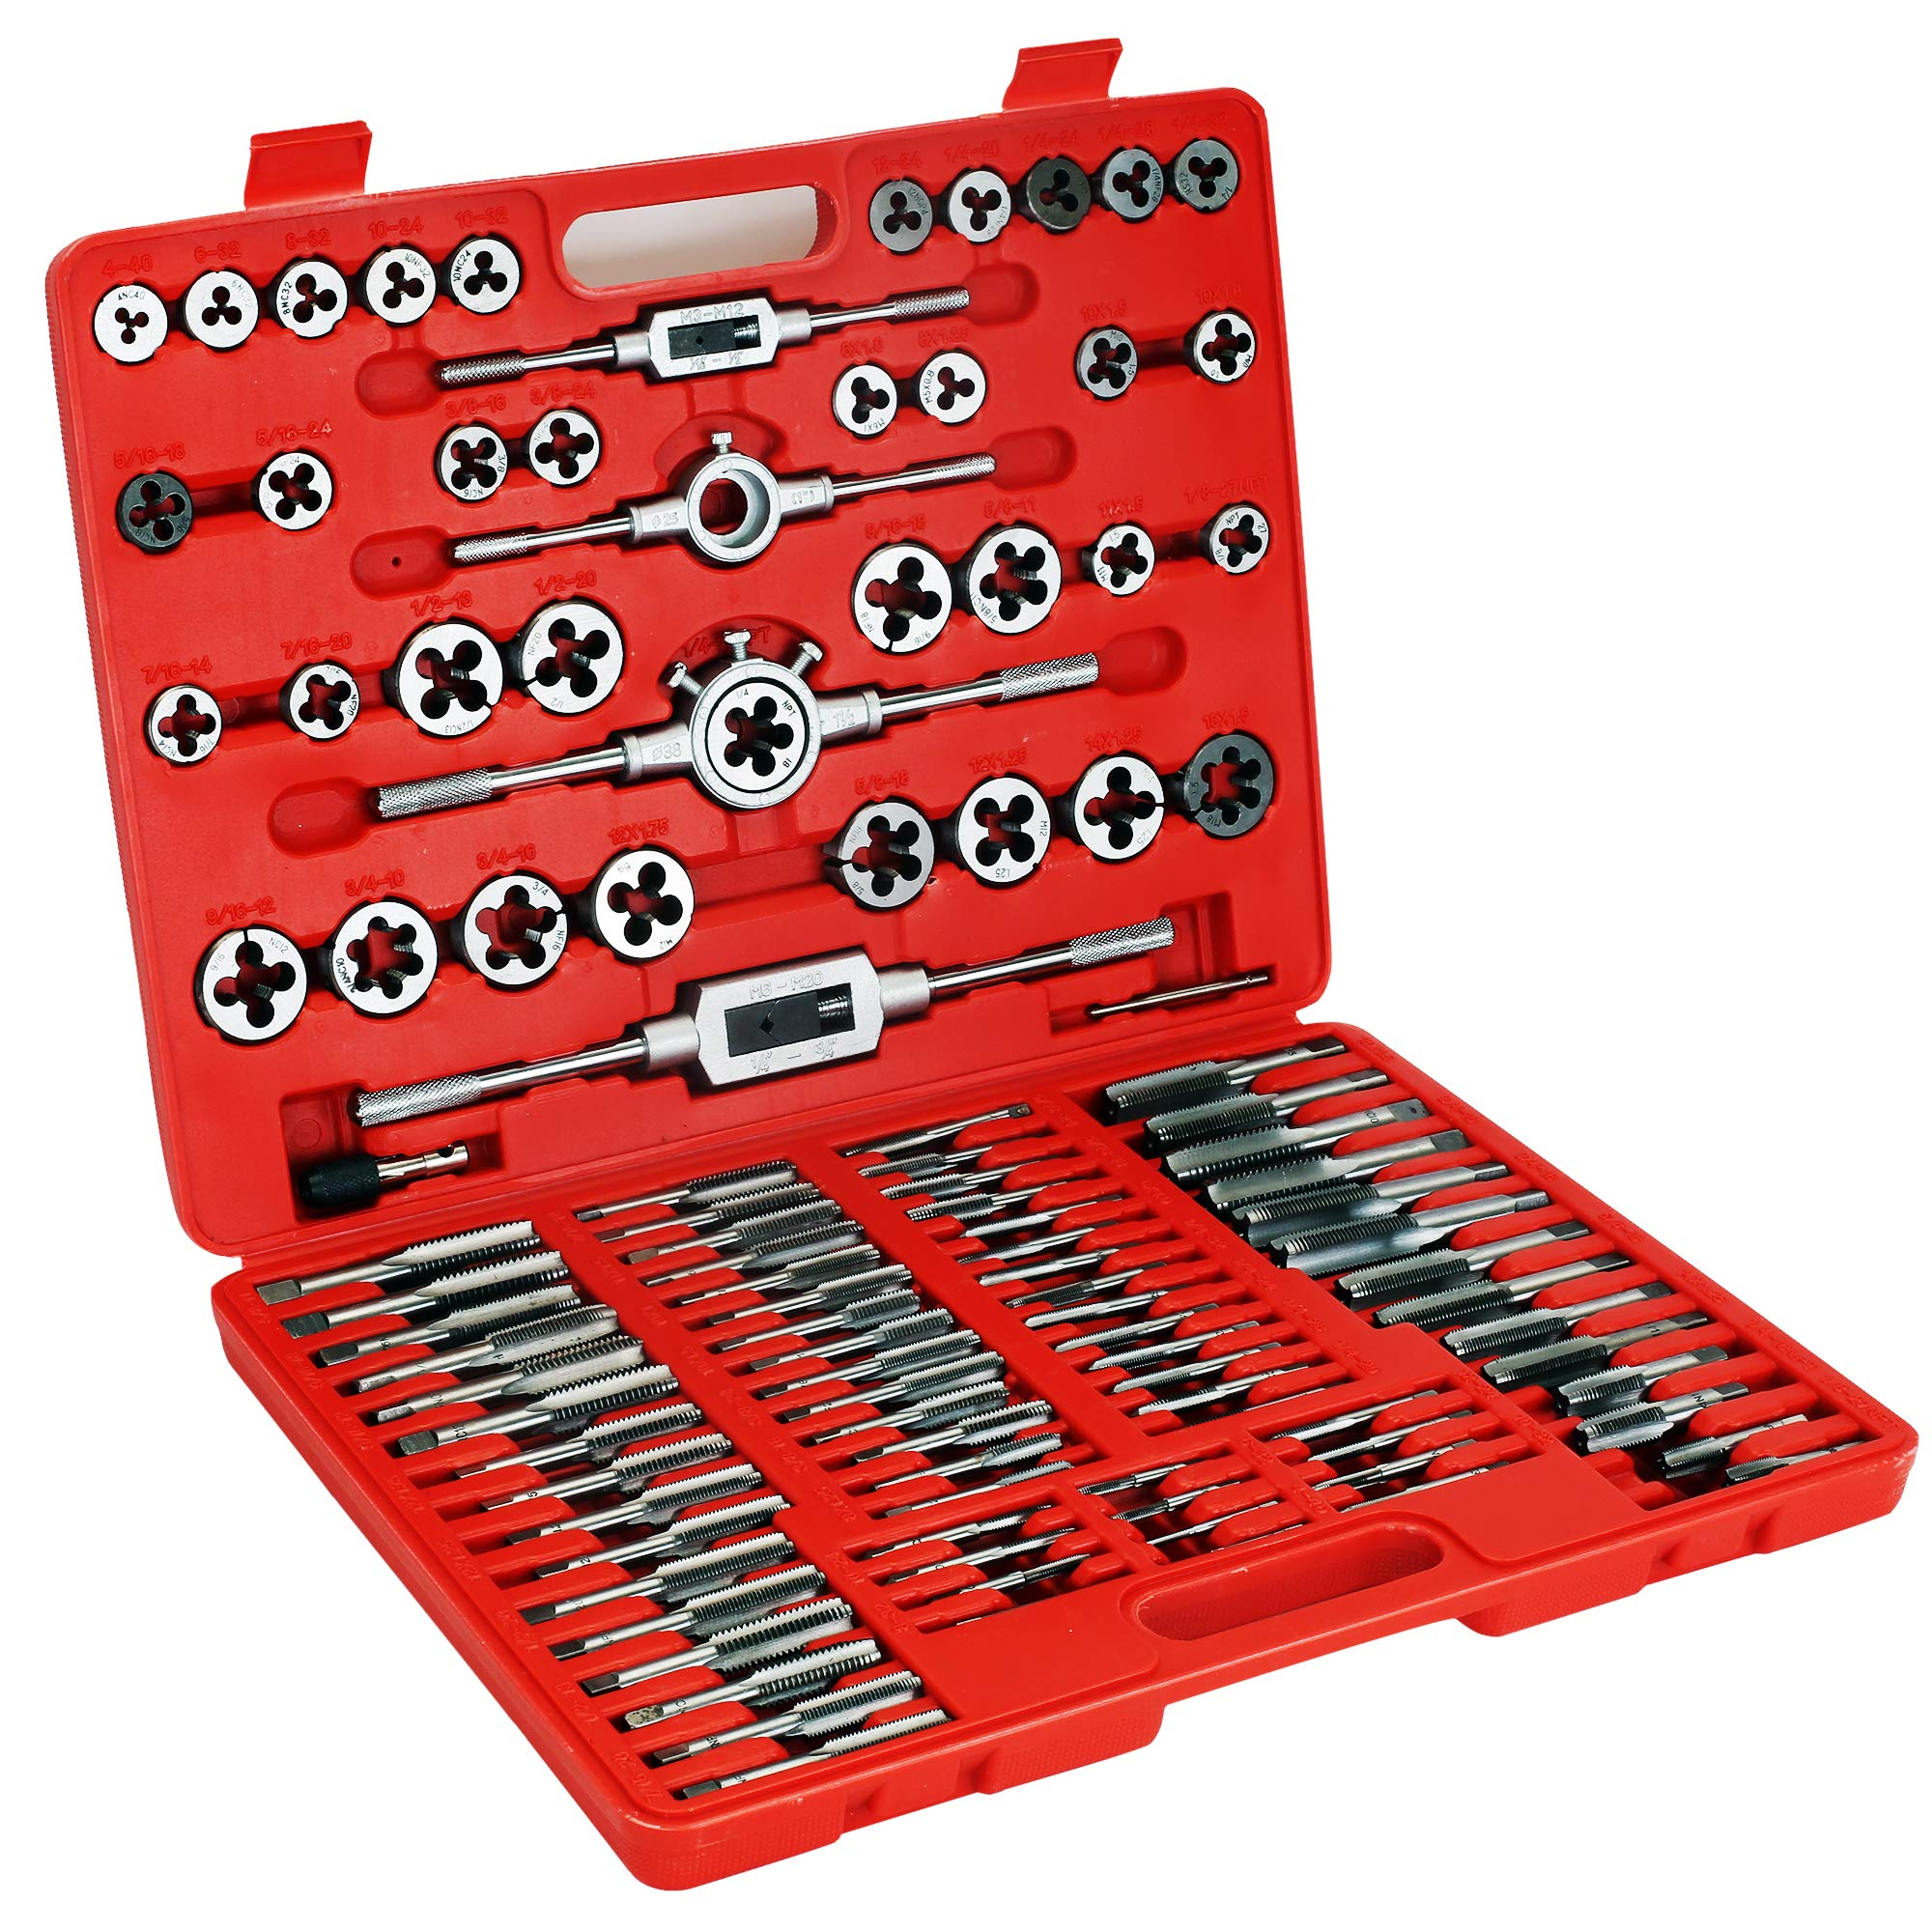 Zoostliss 110PCS Bearing Steel Sae and Metric Tap and Die Set by Zoostliss